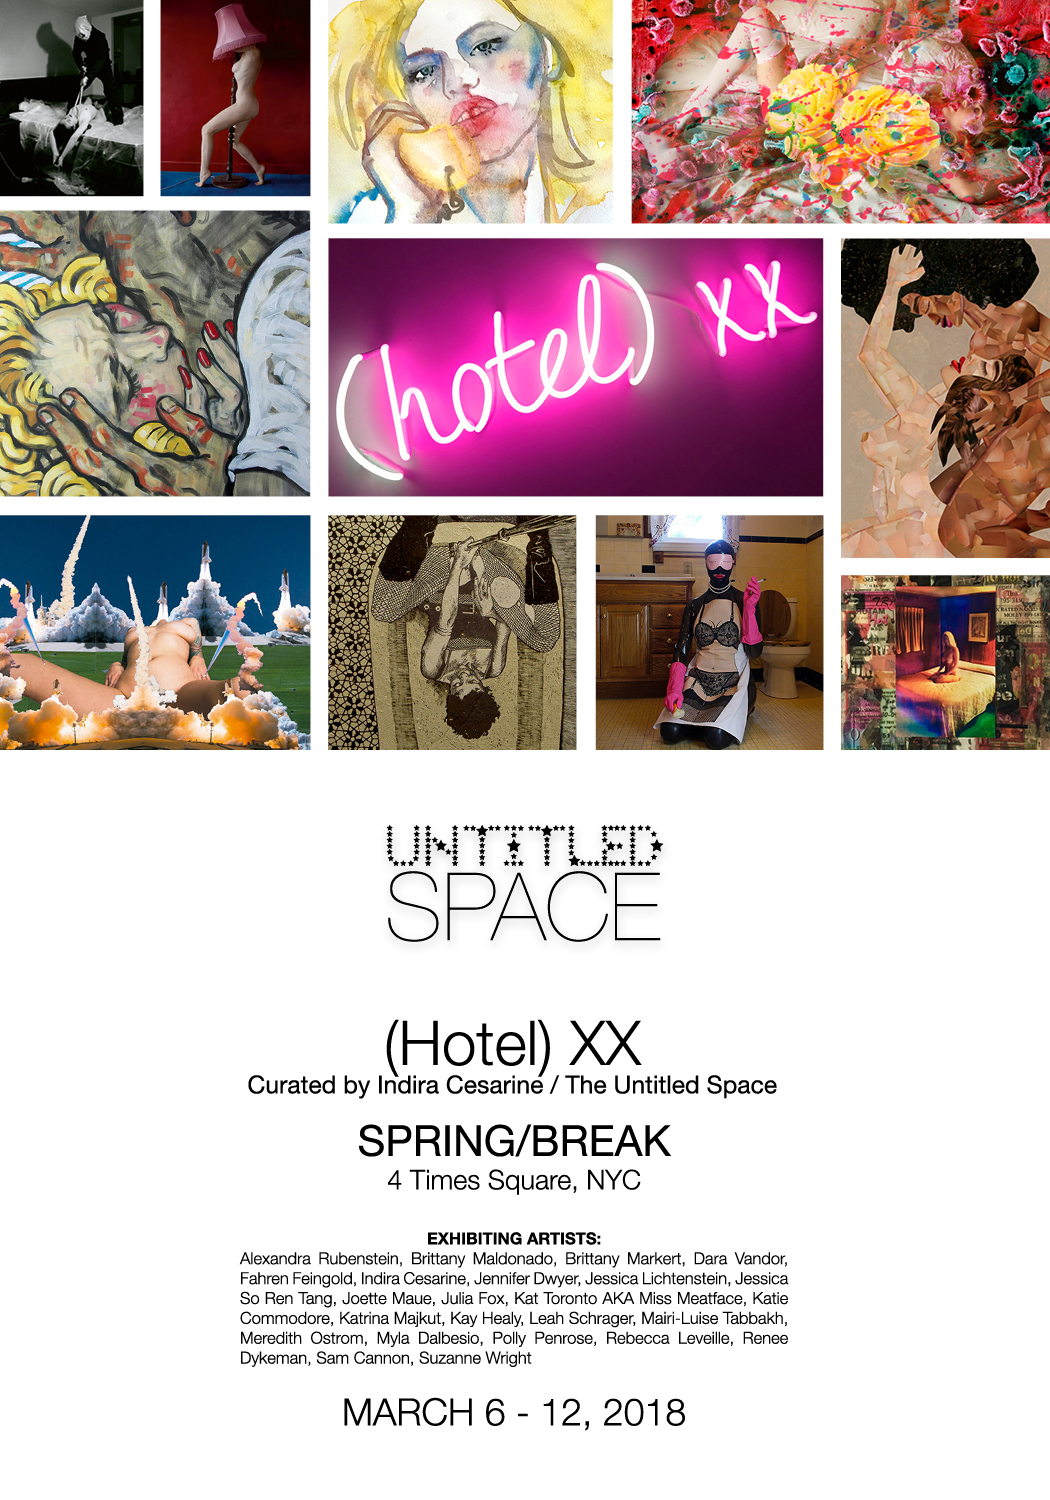 (HOTEL) XX - Exhibit - SpringBreak Art Show - Curated by indira Cesarine of The Untitled Space.jpg